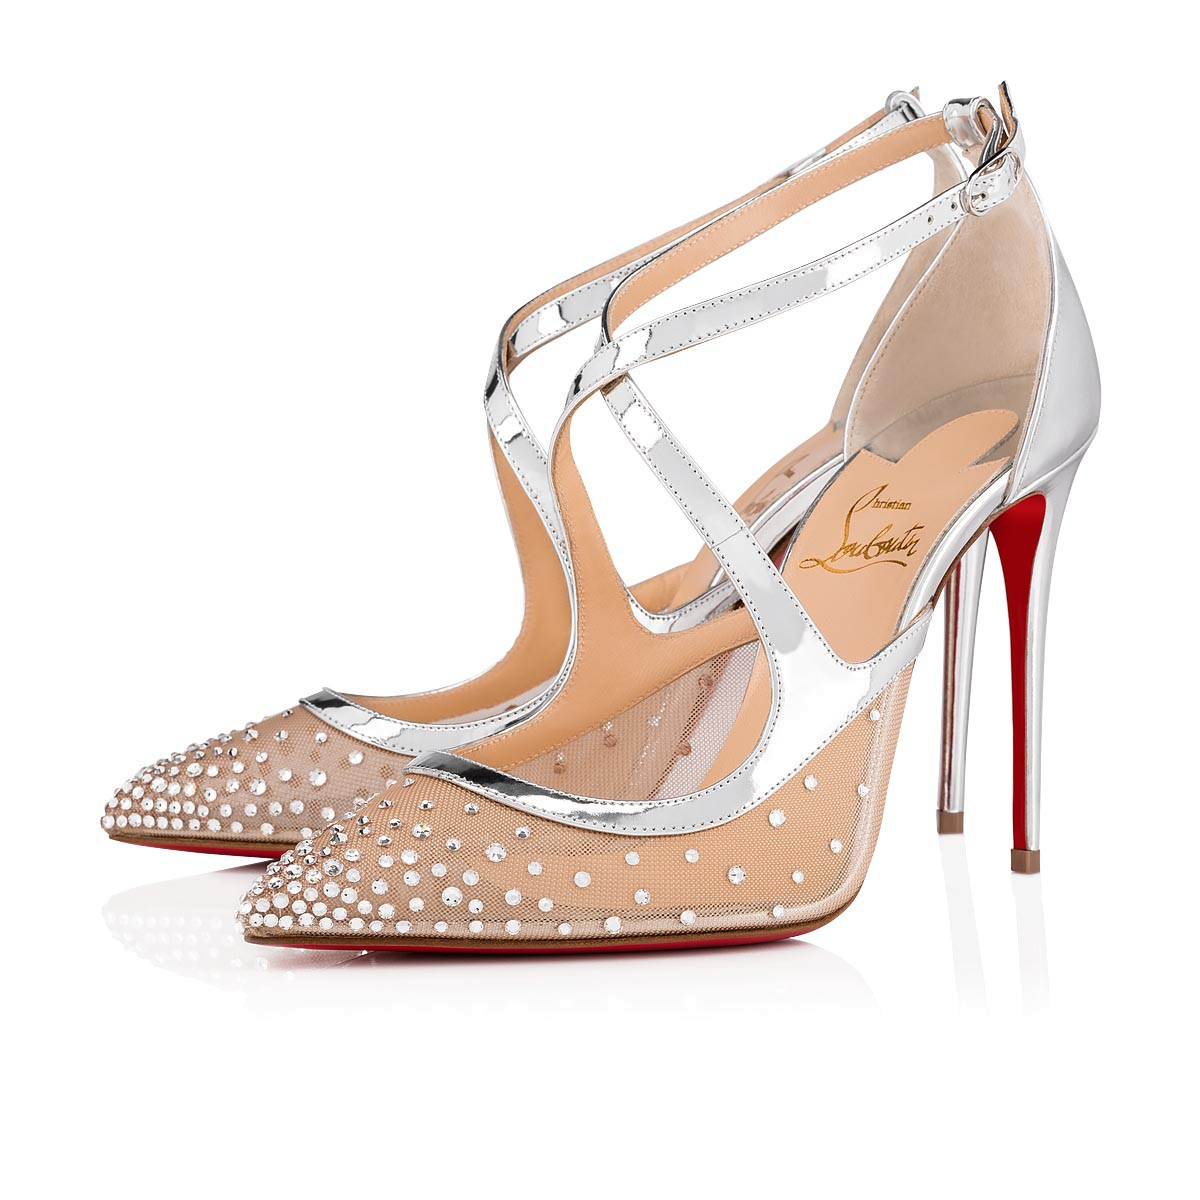 9c9ab6ce892 Christian Louboutin Twistissima Strass 100 Metallic Leather Pumps In  Version Crystal